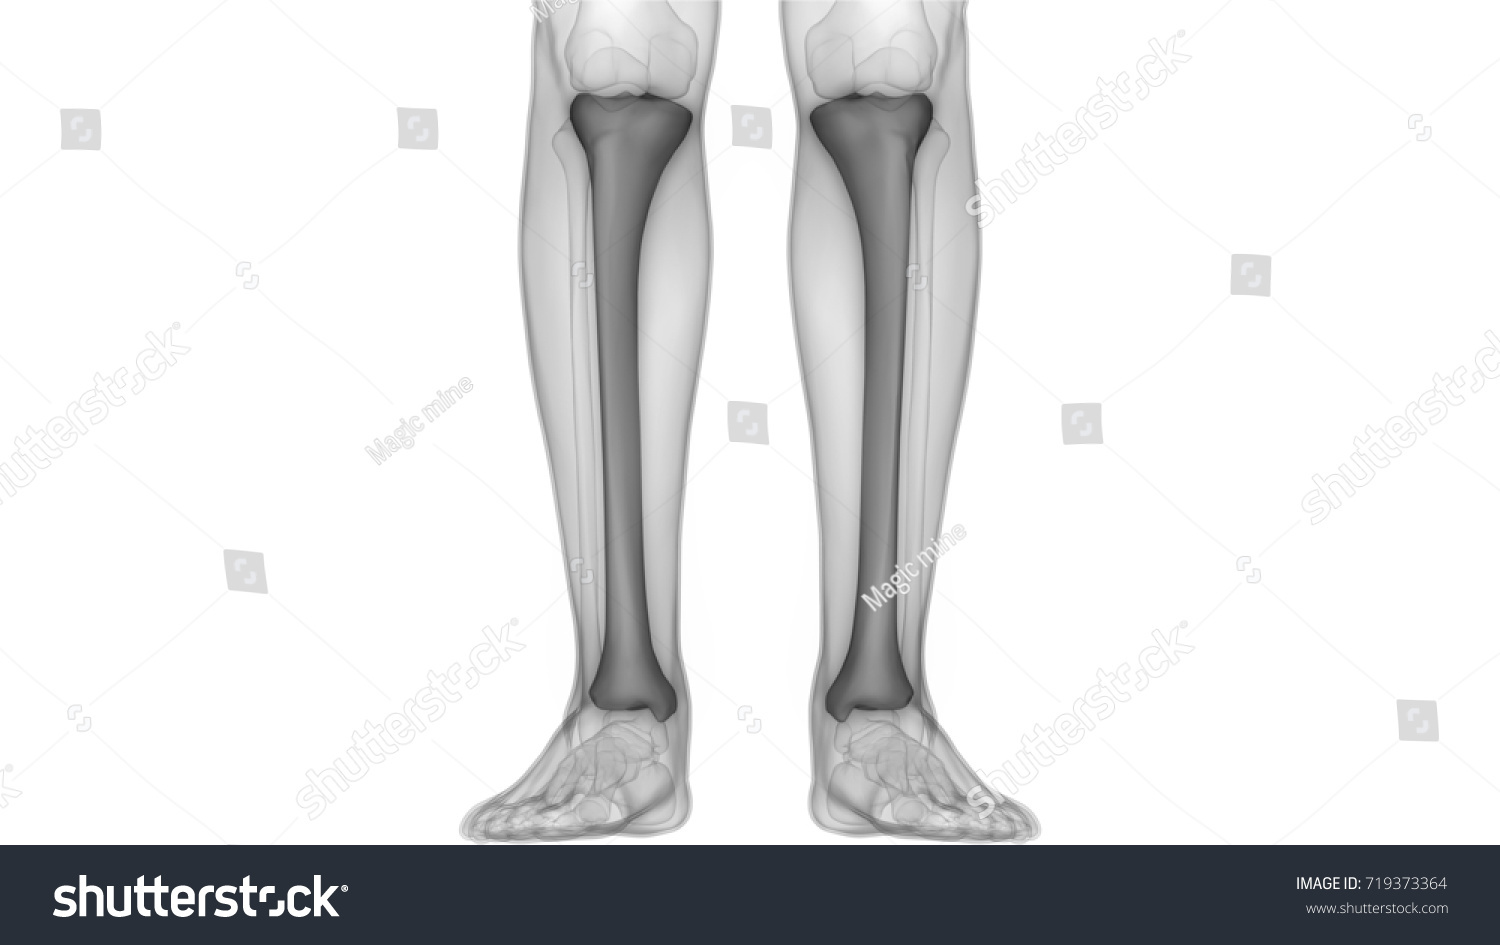 Human Skeleton Bones Anatomy Tibia 3 D Stock Illustration - Royalty ...